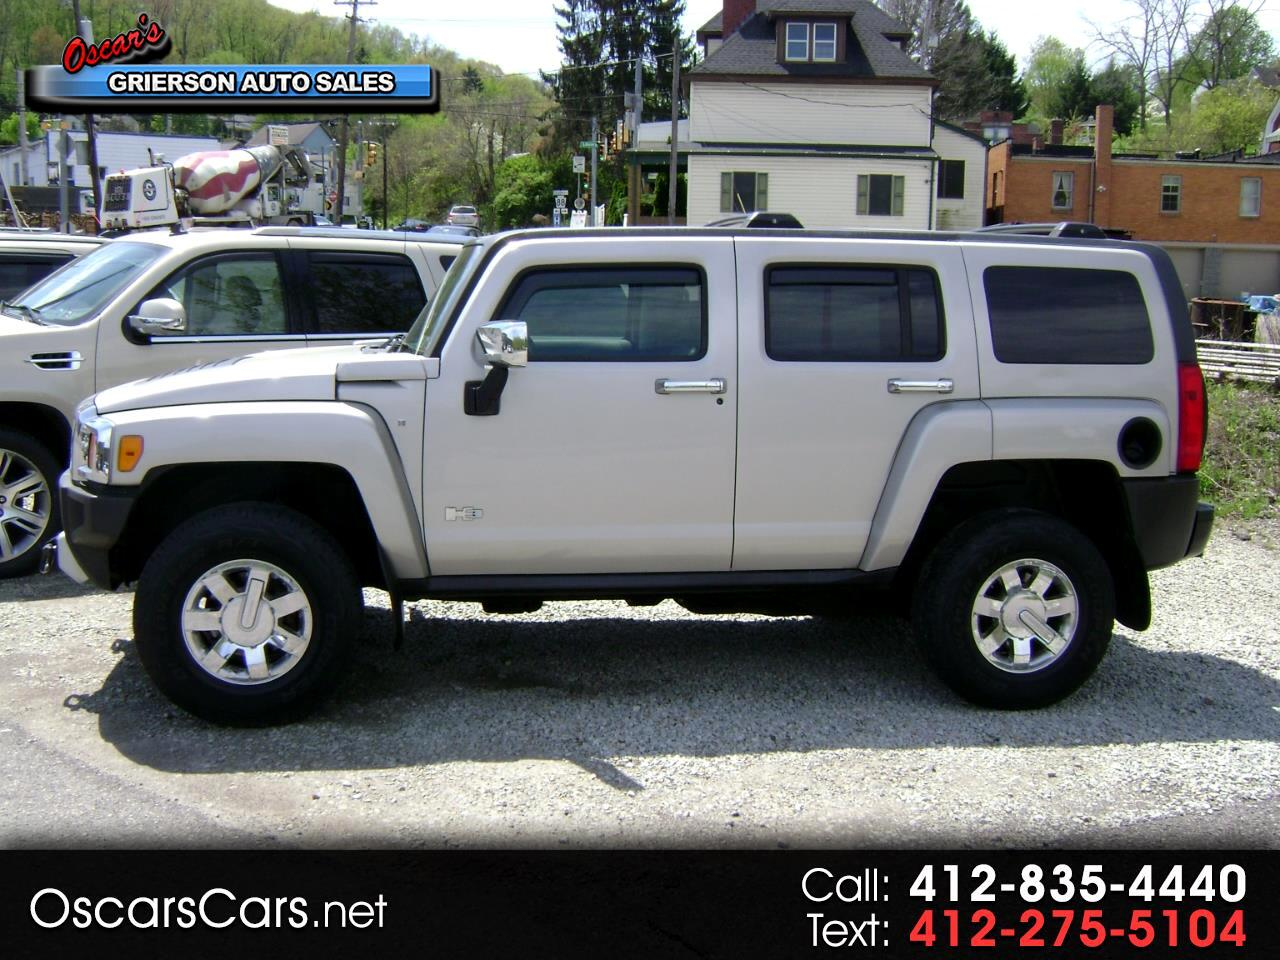 2009 HUMMER H3 4WD 4dr SUV Luxury